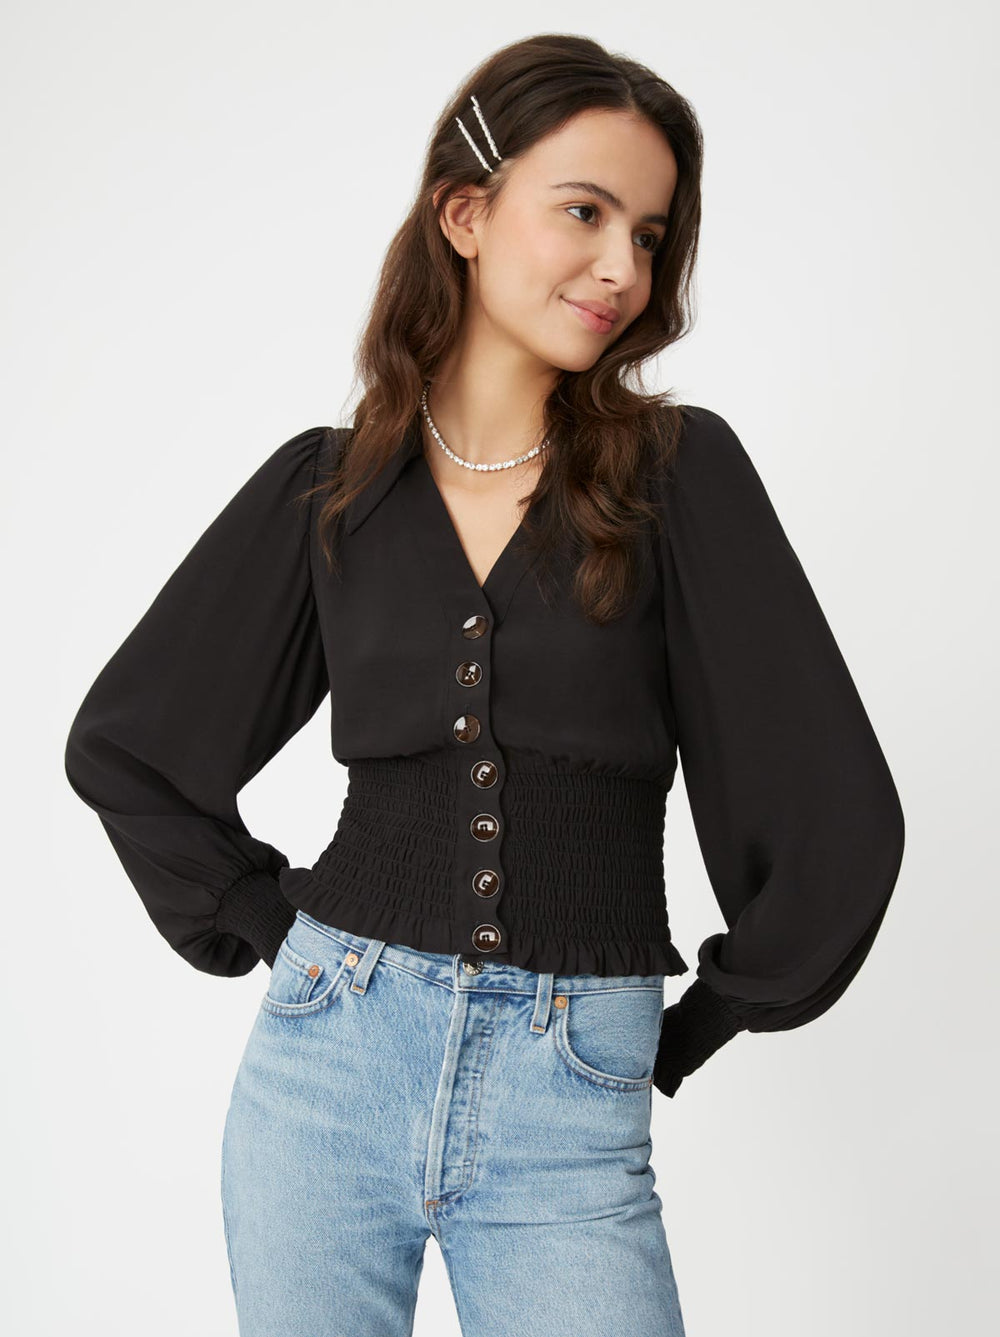 Michelle Black Vintage Top by KITRI Studio